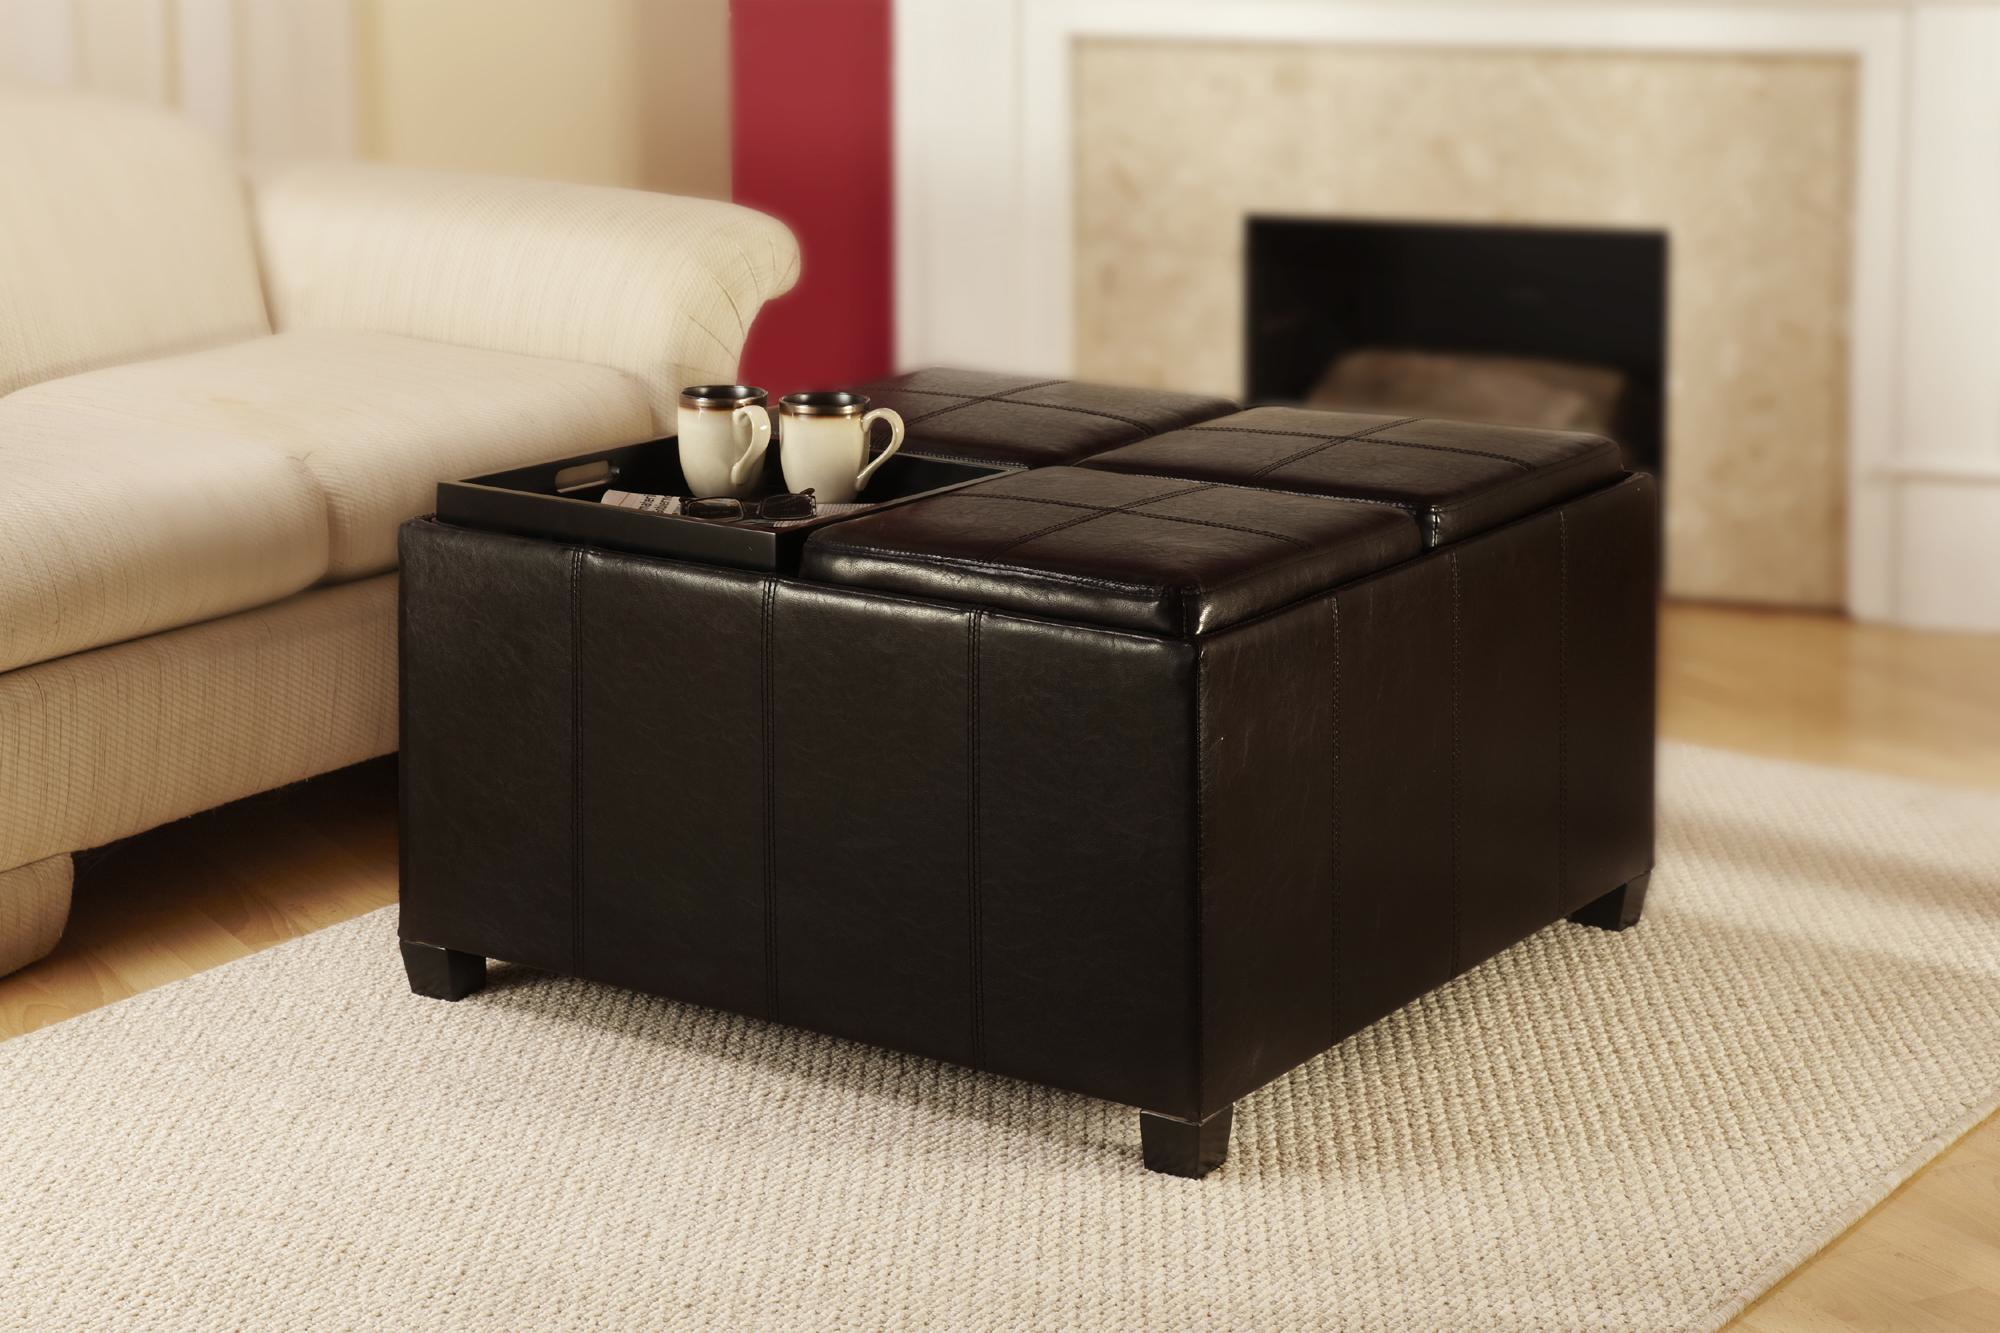 Extra Large Ottoman | Leather Ottoman Coffee Tables | Square Coffee Table With Ottomans